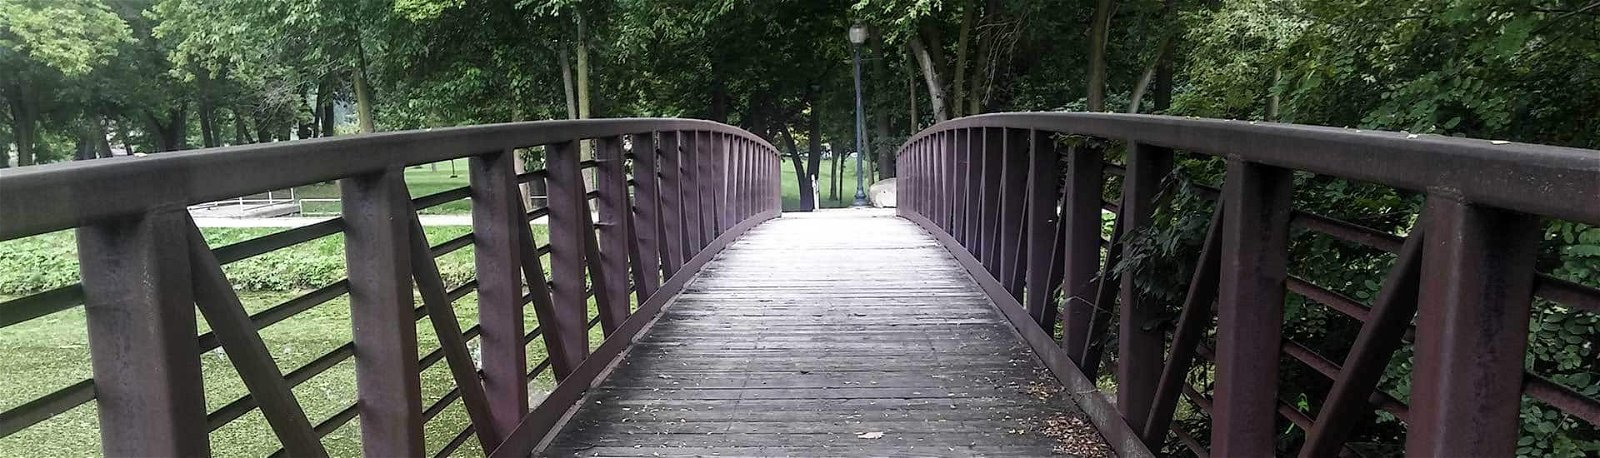 bridge over canal and trees